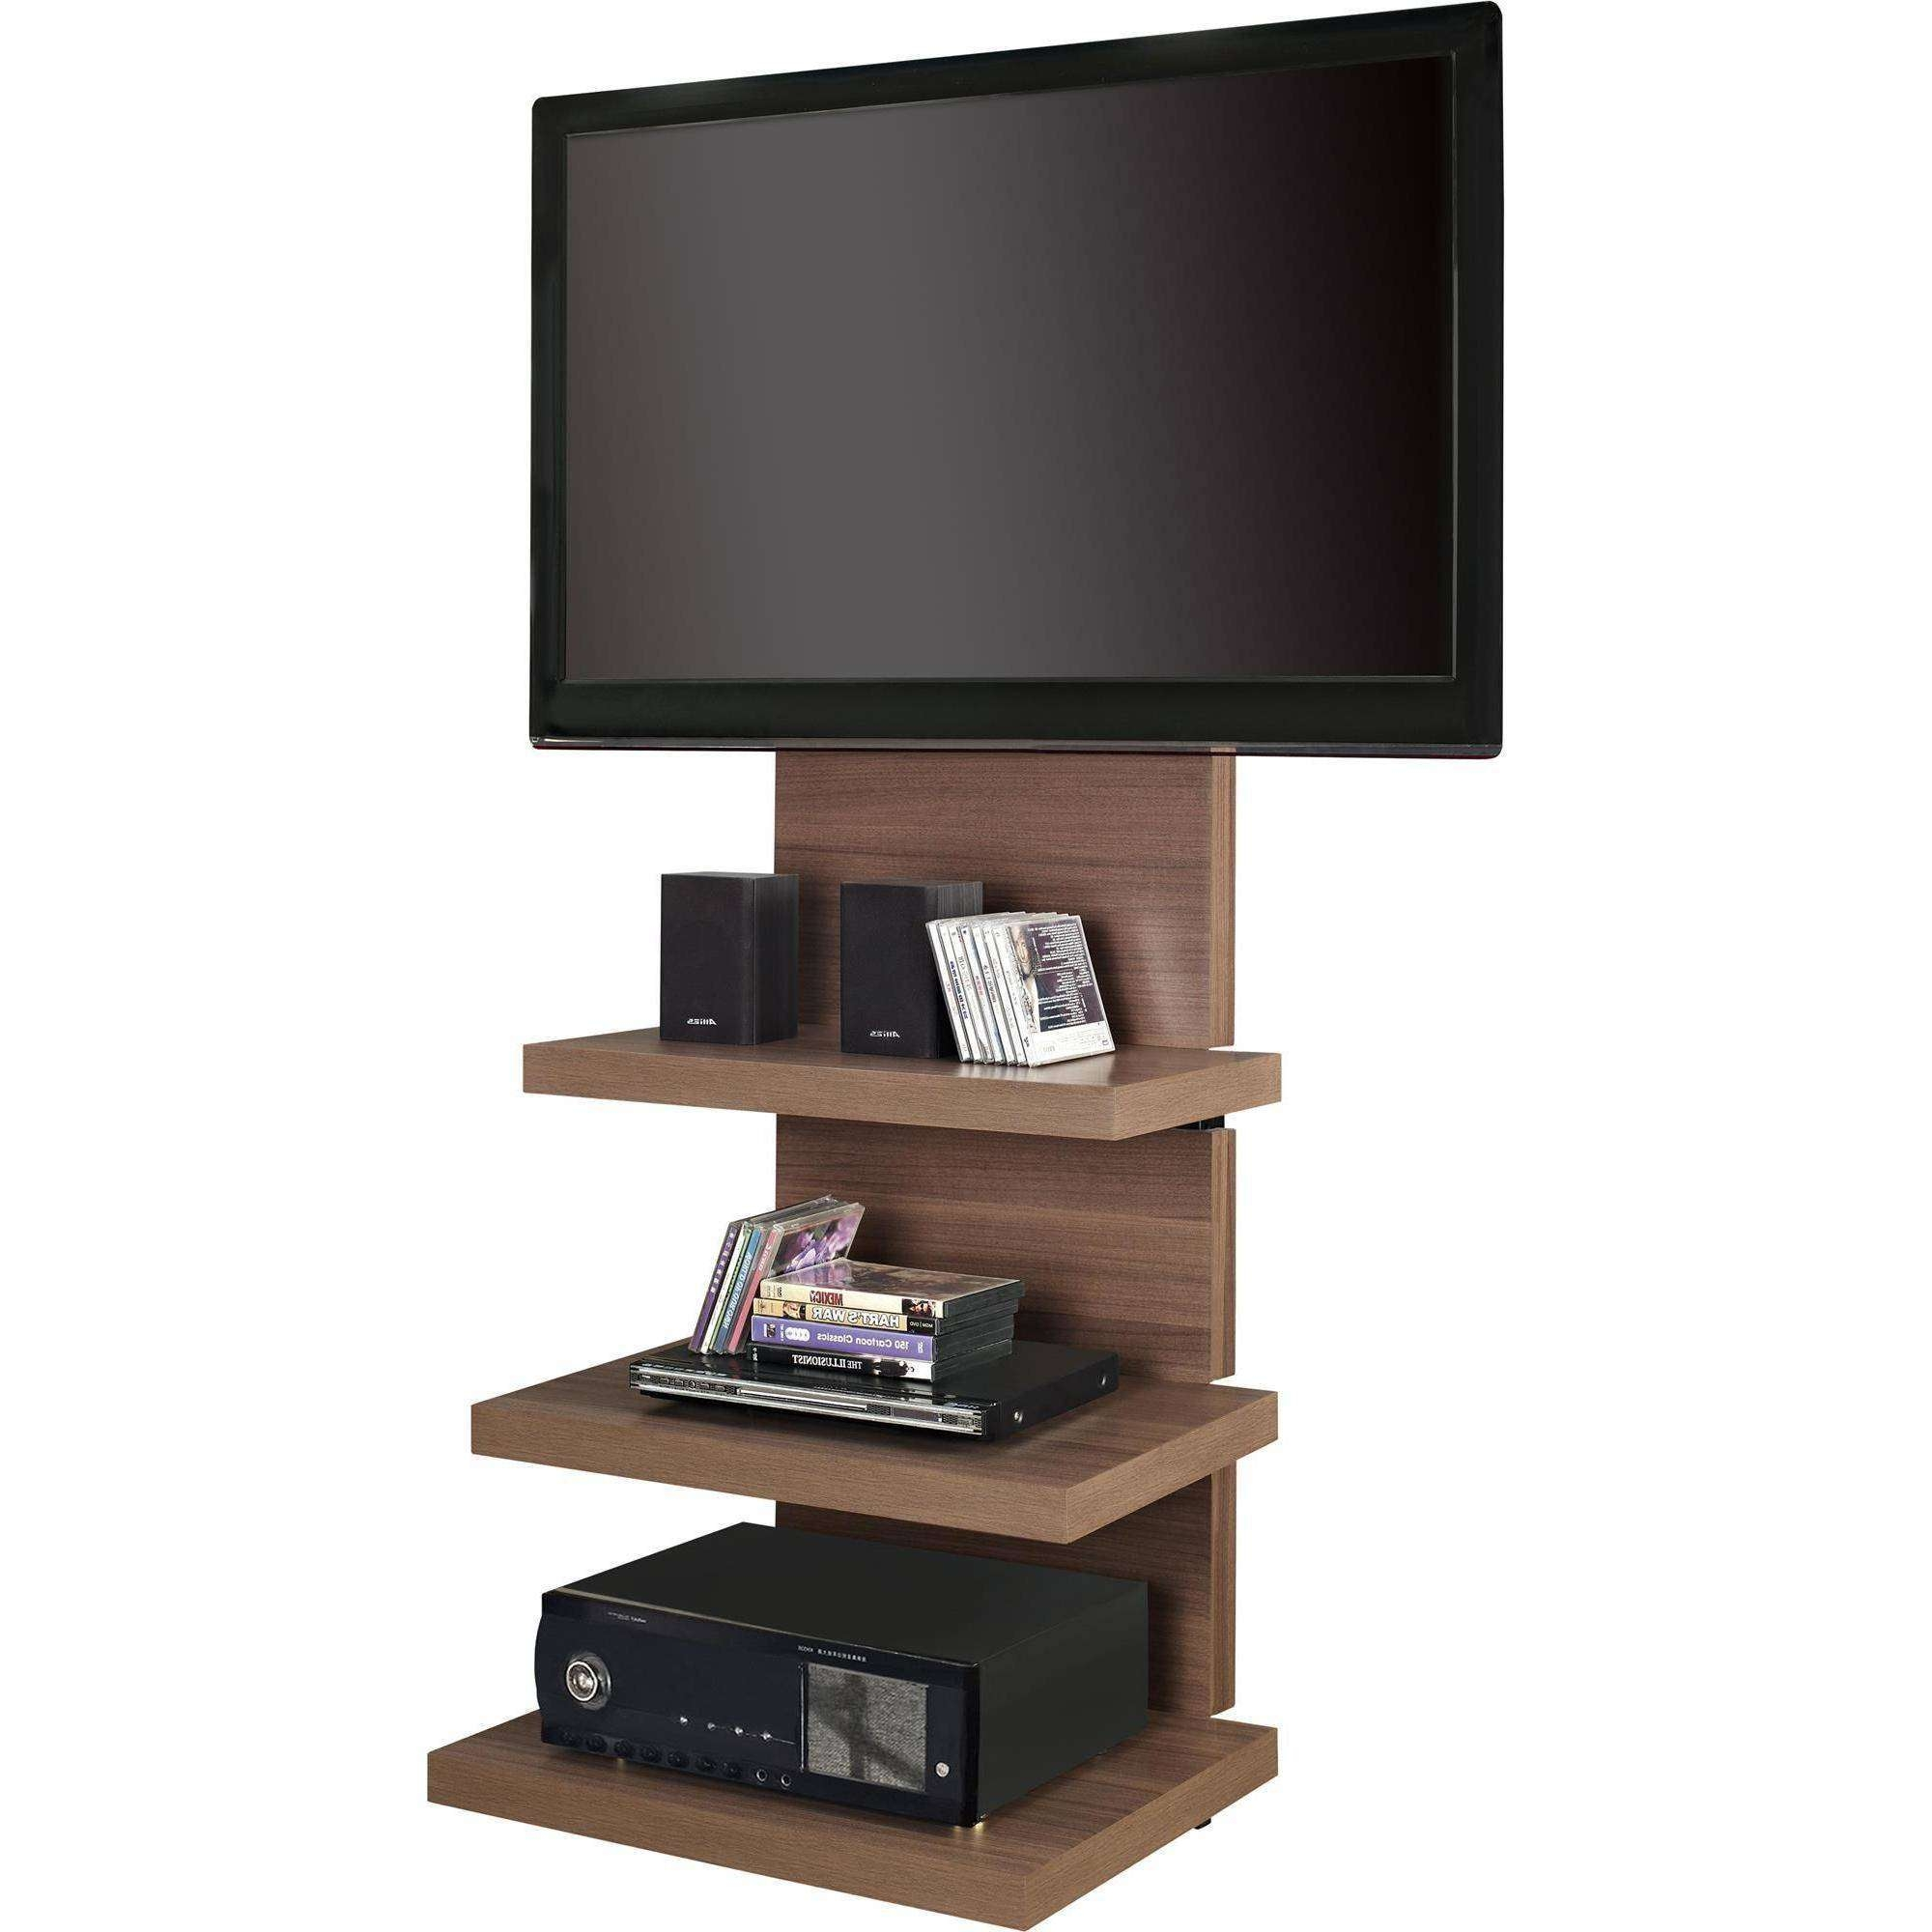 Altra Wall Mount Tv Stand With 3 Shelves, For Tvs Up To 60"